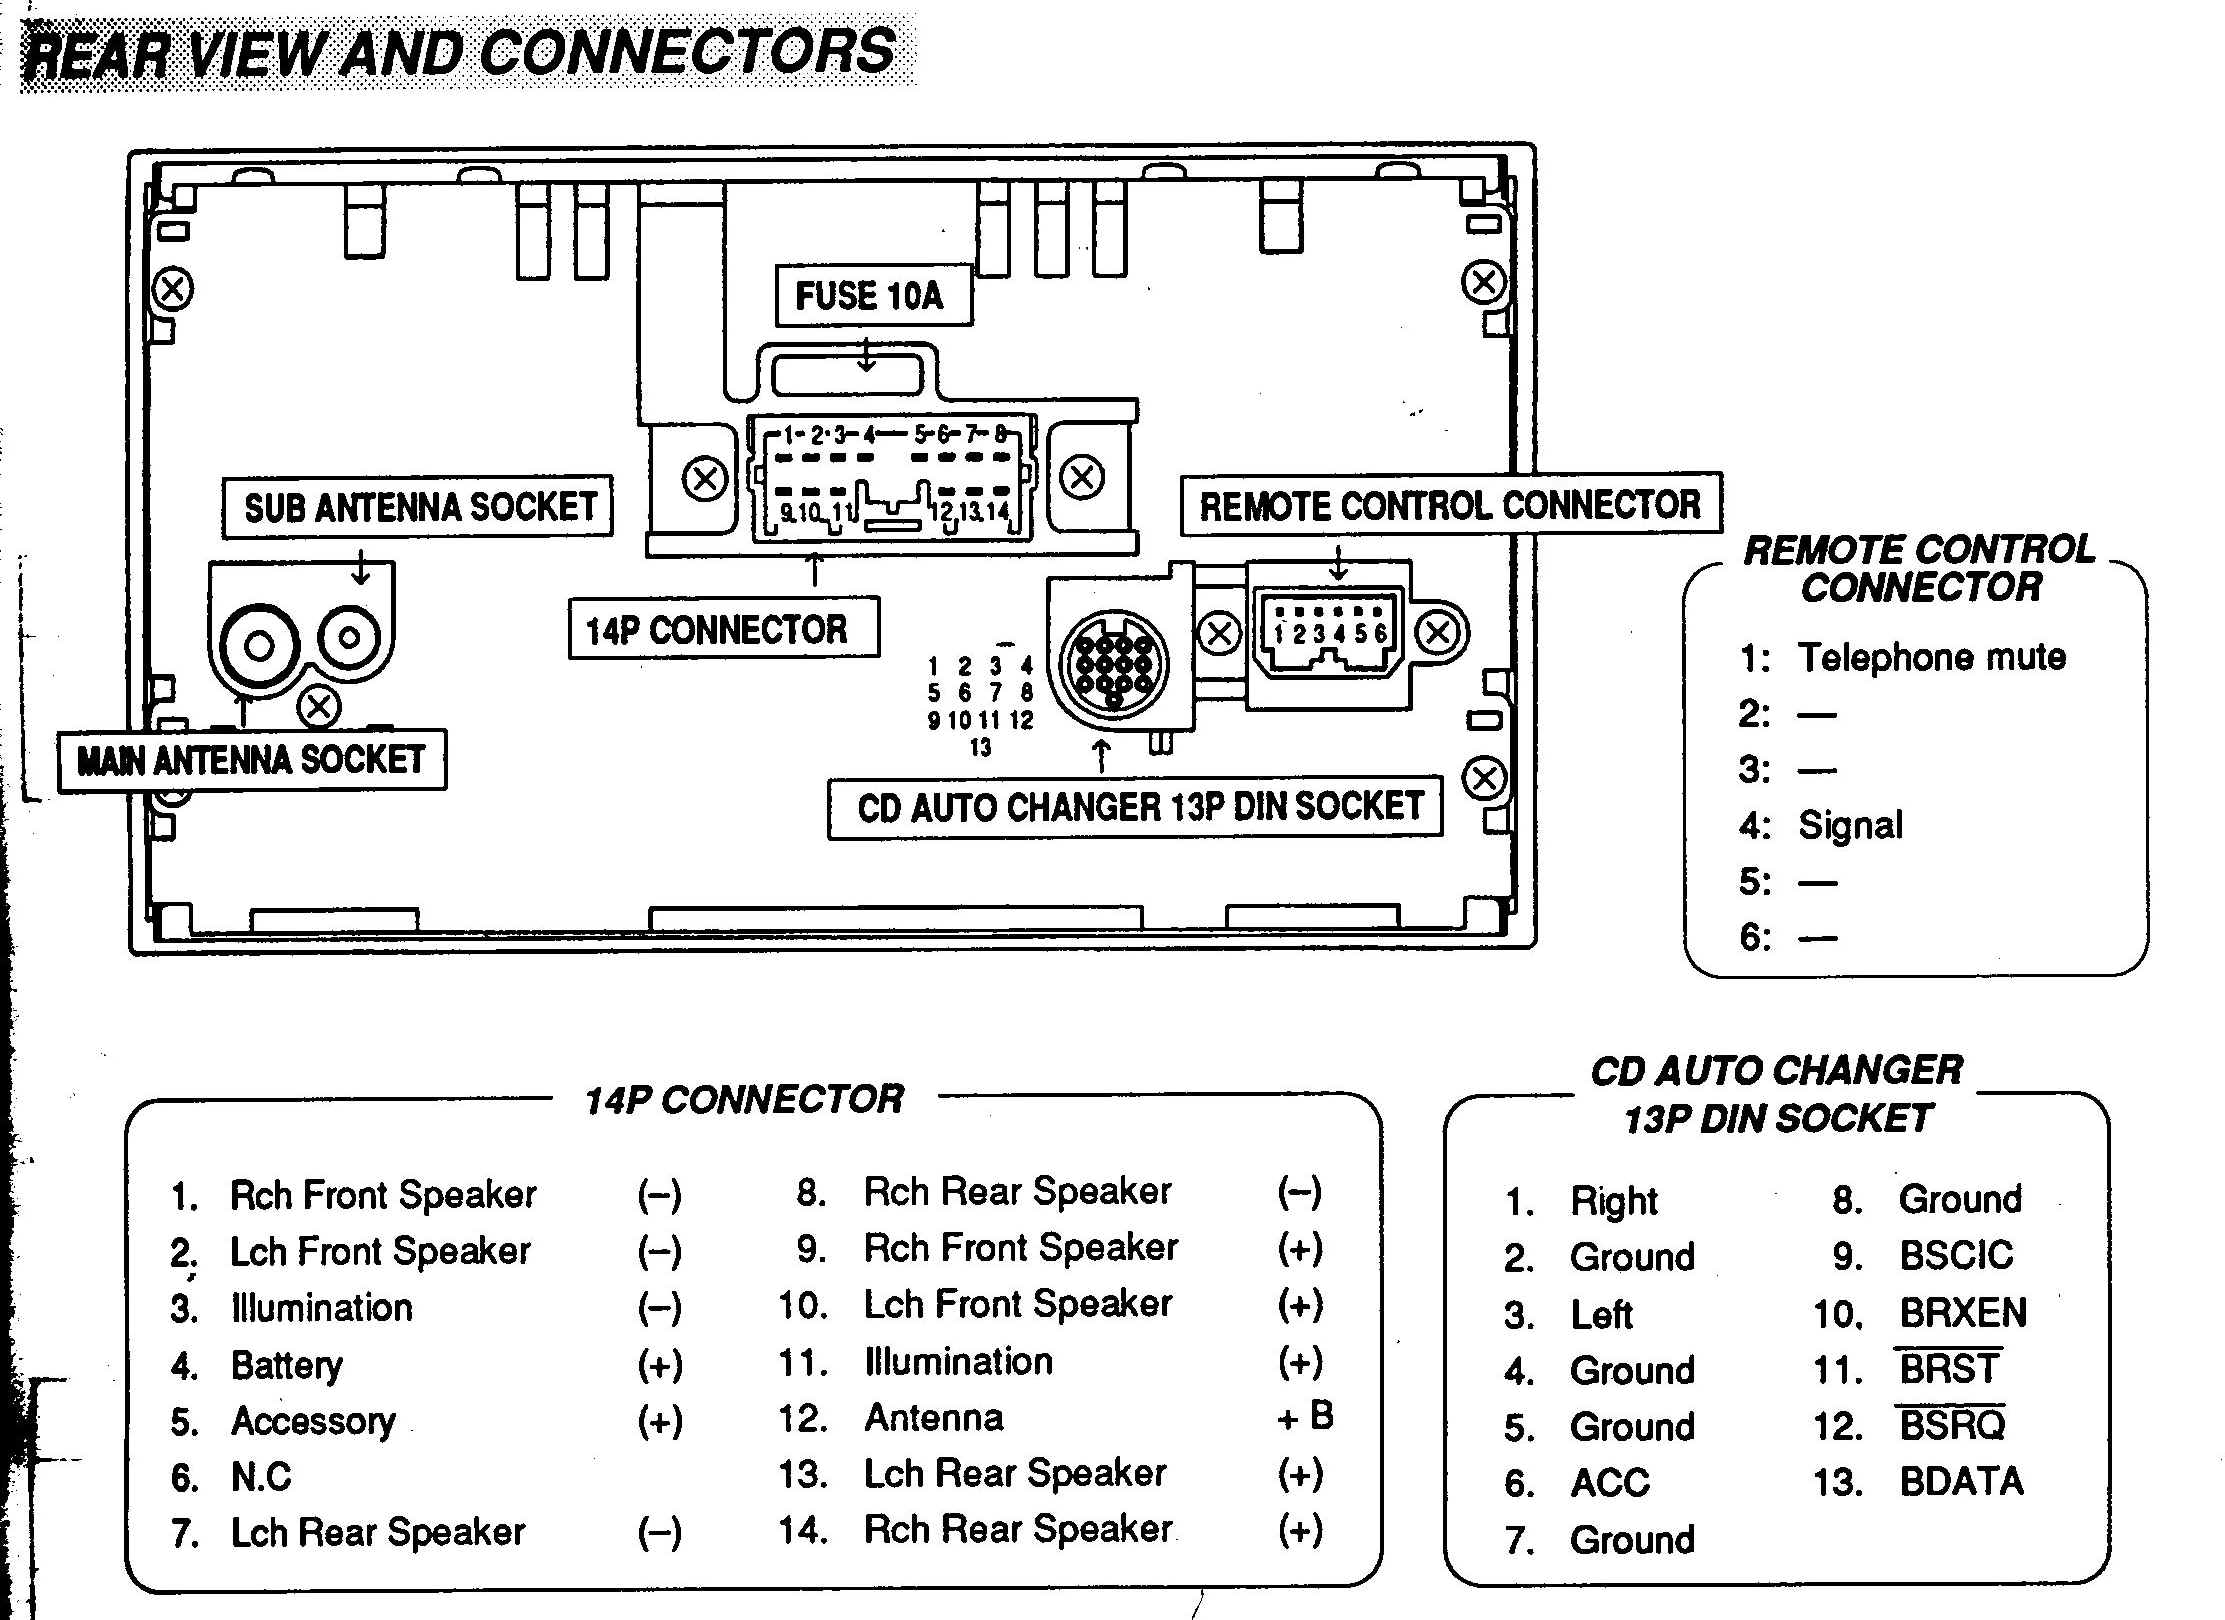 2 Din Car Stereo Wiring Diagram in addition 2014 07 01 archive besides 2003 Chevy Impala Stereo Wiring Diagram also FORD Car Radio Wiring Connector furthermore 1999 2000 2001 2004 Jeep Grand Cherokee Head Unit Auto A V Dvd Radio Gps Navigation Bluetooth Music Tv Tuner Steering Wheel Control Dual Zone Ipod Aux T6096. on 2000 ford mustang audio wiring